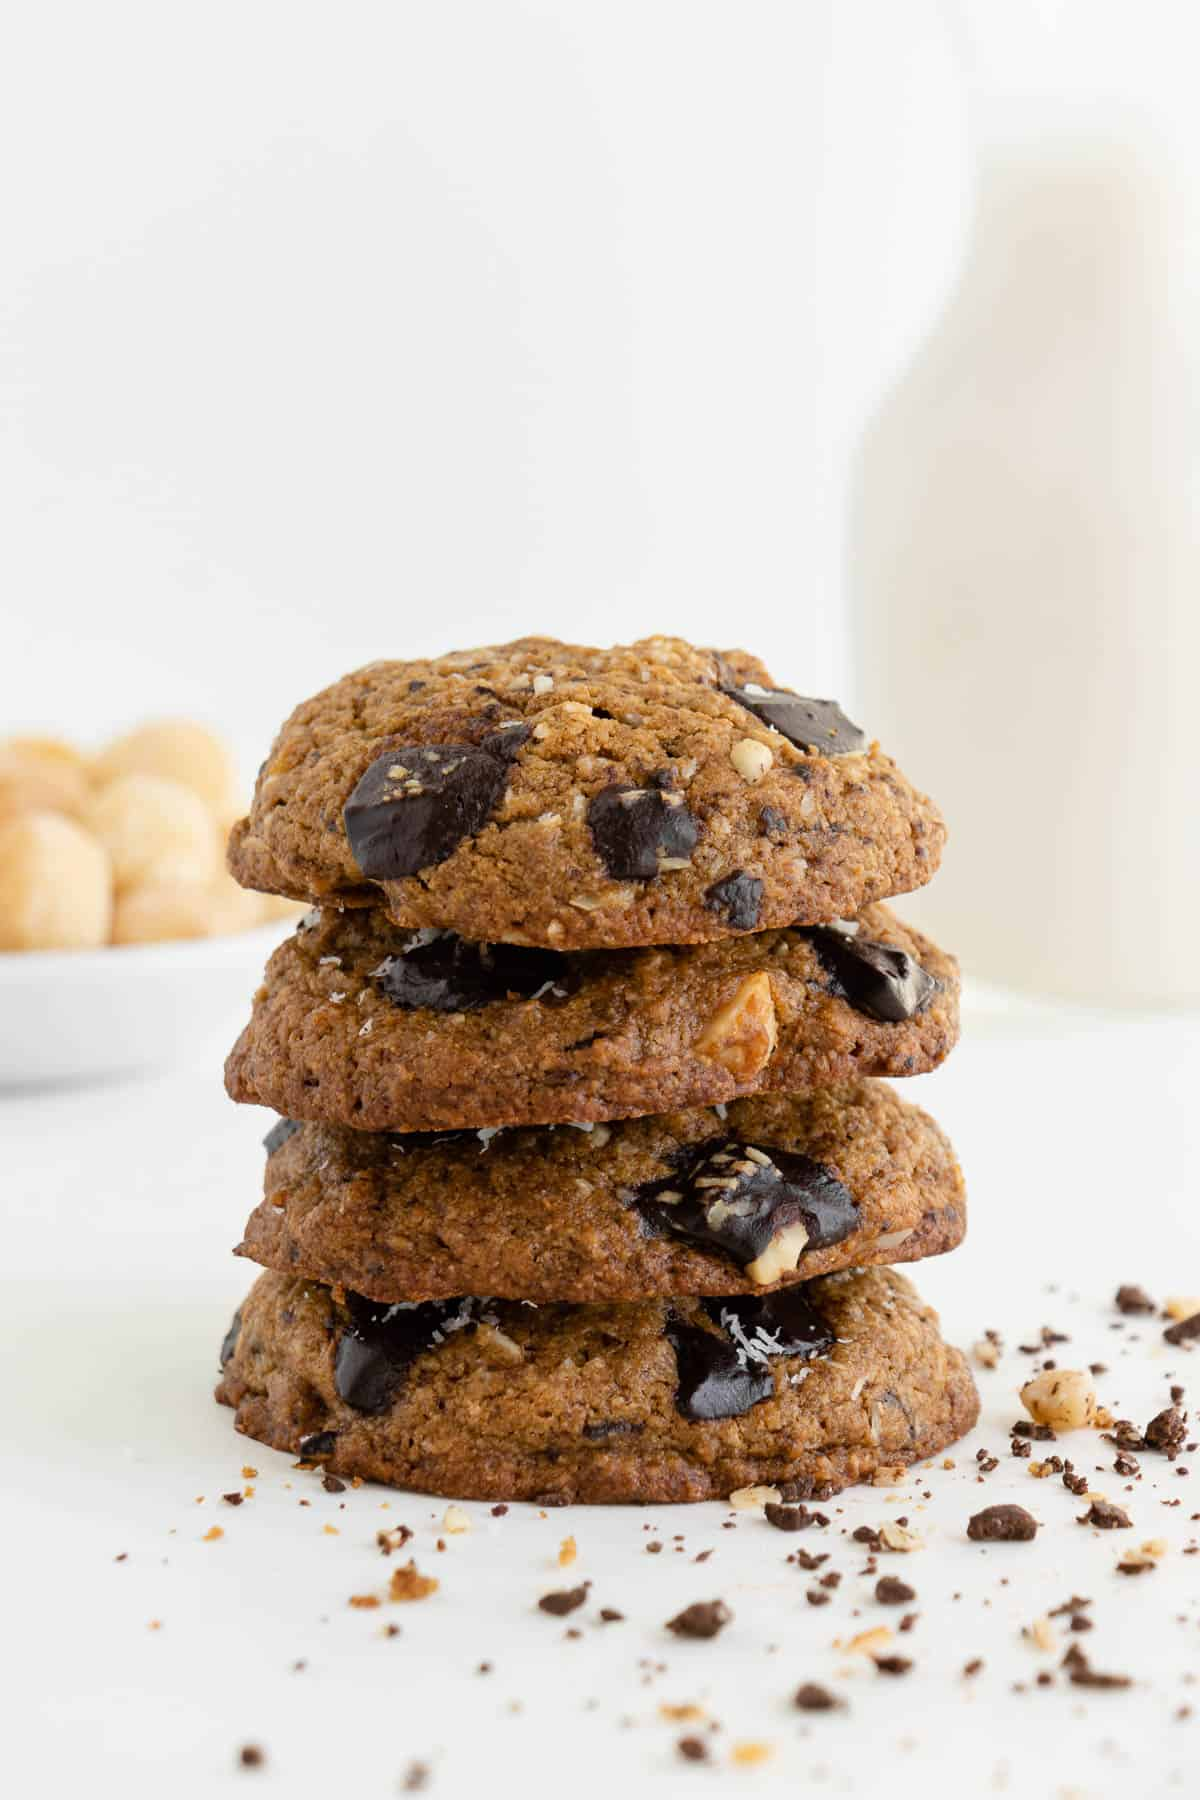 four vegan chocolate chunk hawaiian cookies stacked on top of each other with a glass of almond milk and a bowl of macadamia nuts in the background